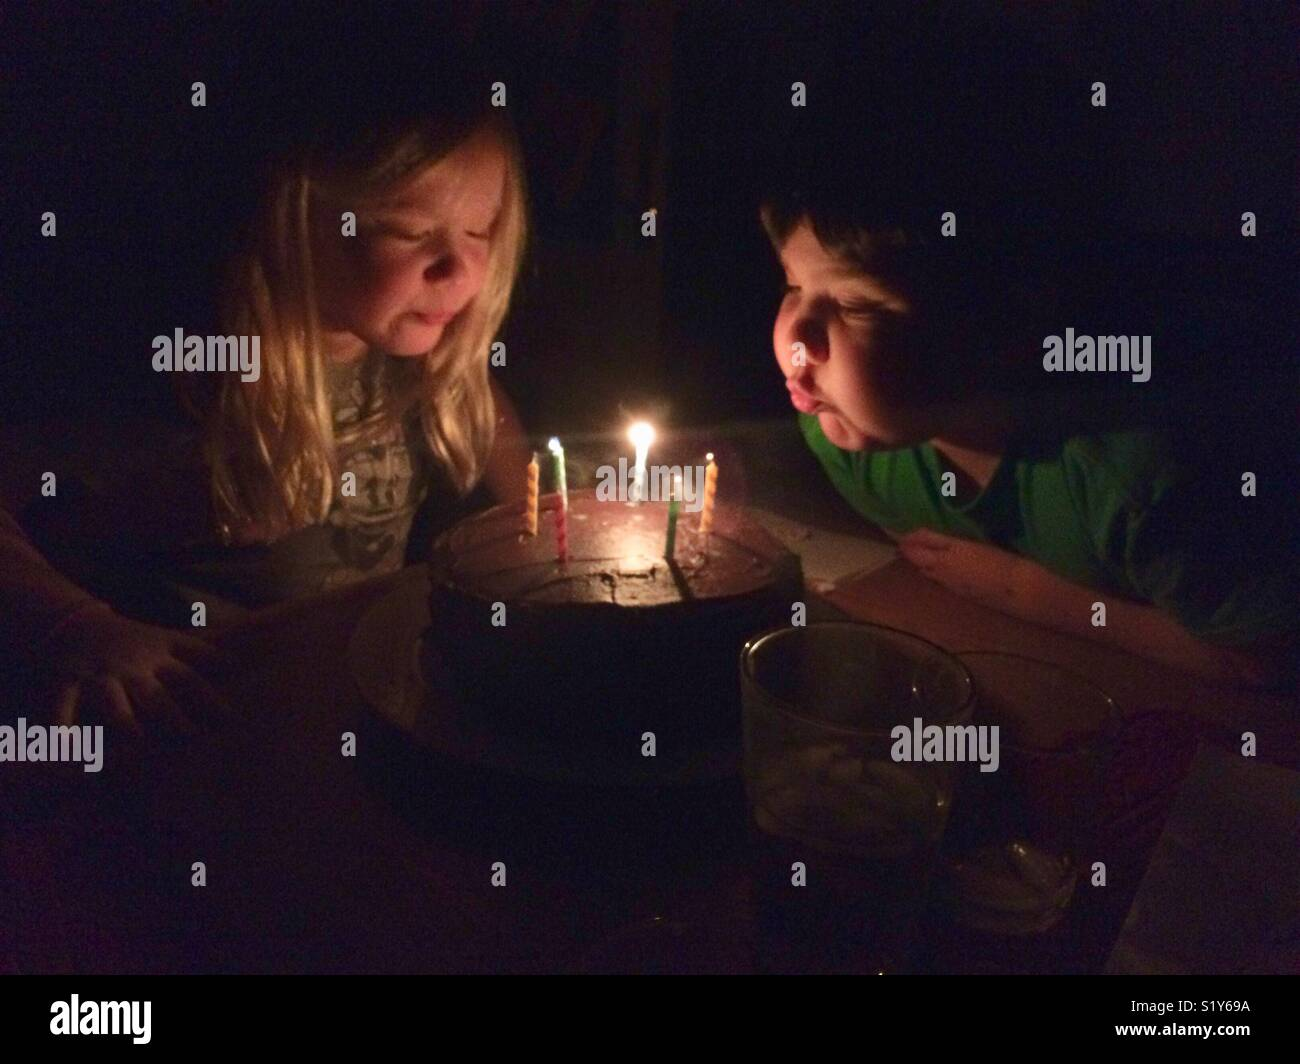 Boy Blowing Out Candles On His Birthday Cake Stock Photos & Boy